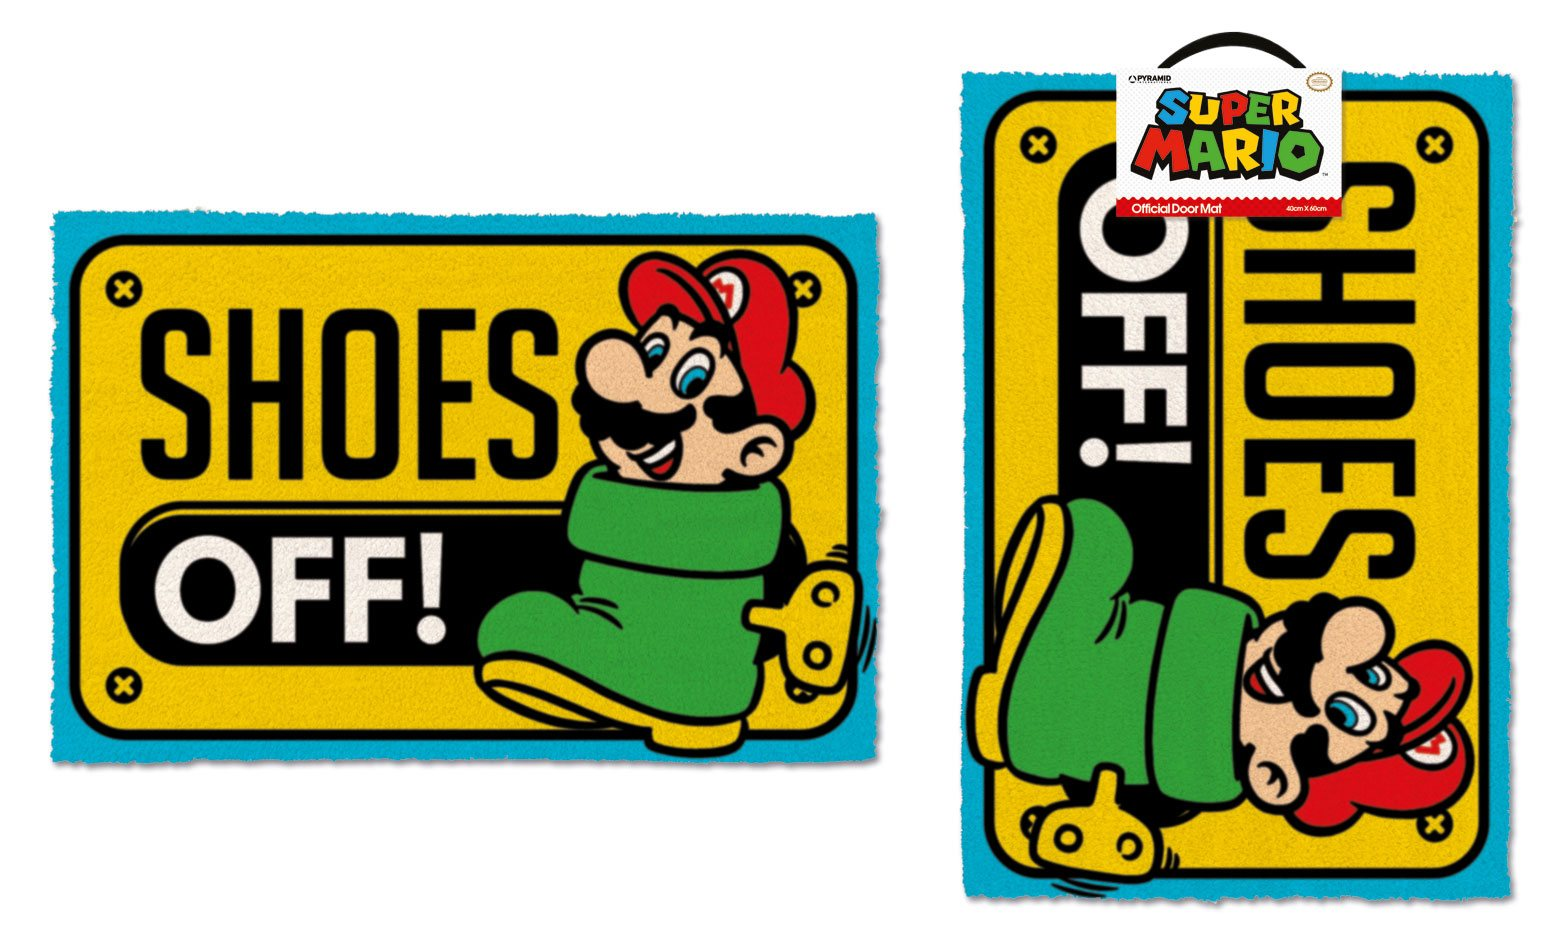 Super Mario Doormat Shoes Off 40 x 60 cm